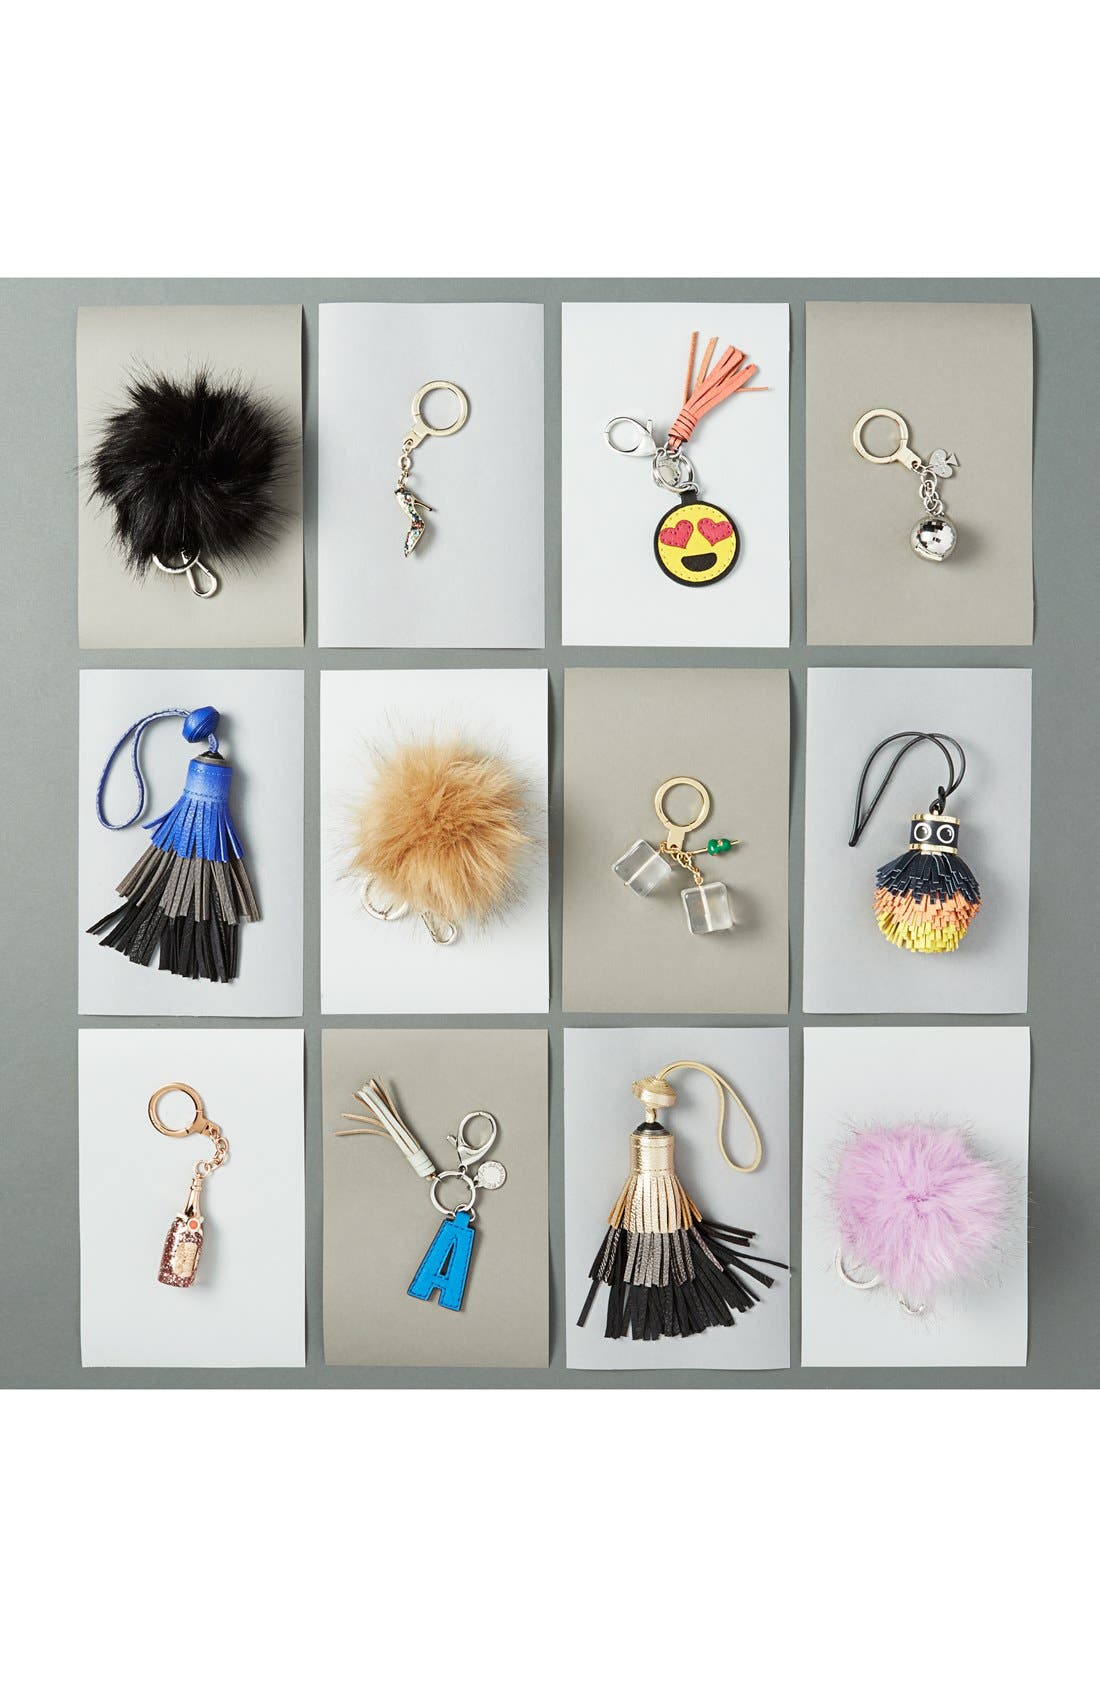 'Hubba Hubba' Bag Charm,                             Alternate thumbnail 3, color,                             700